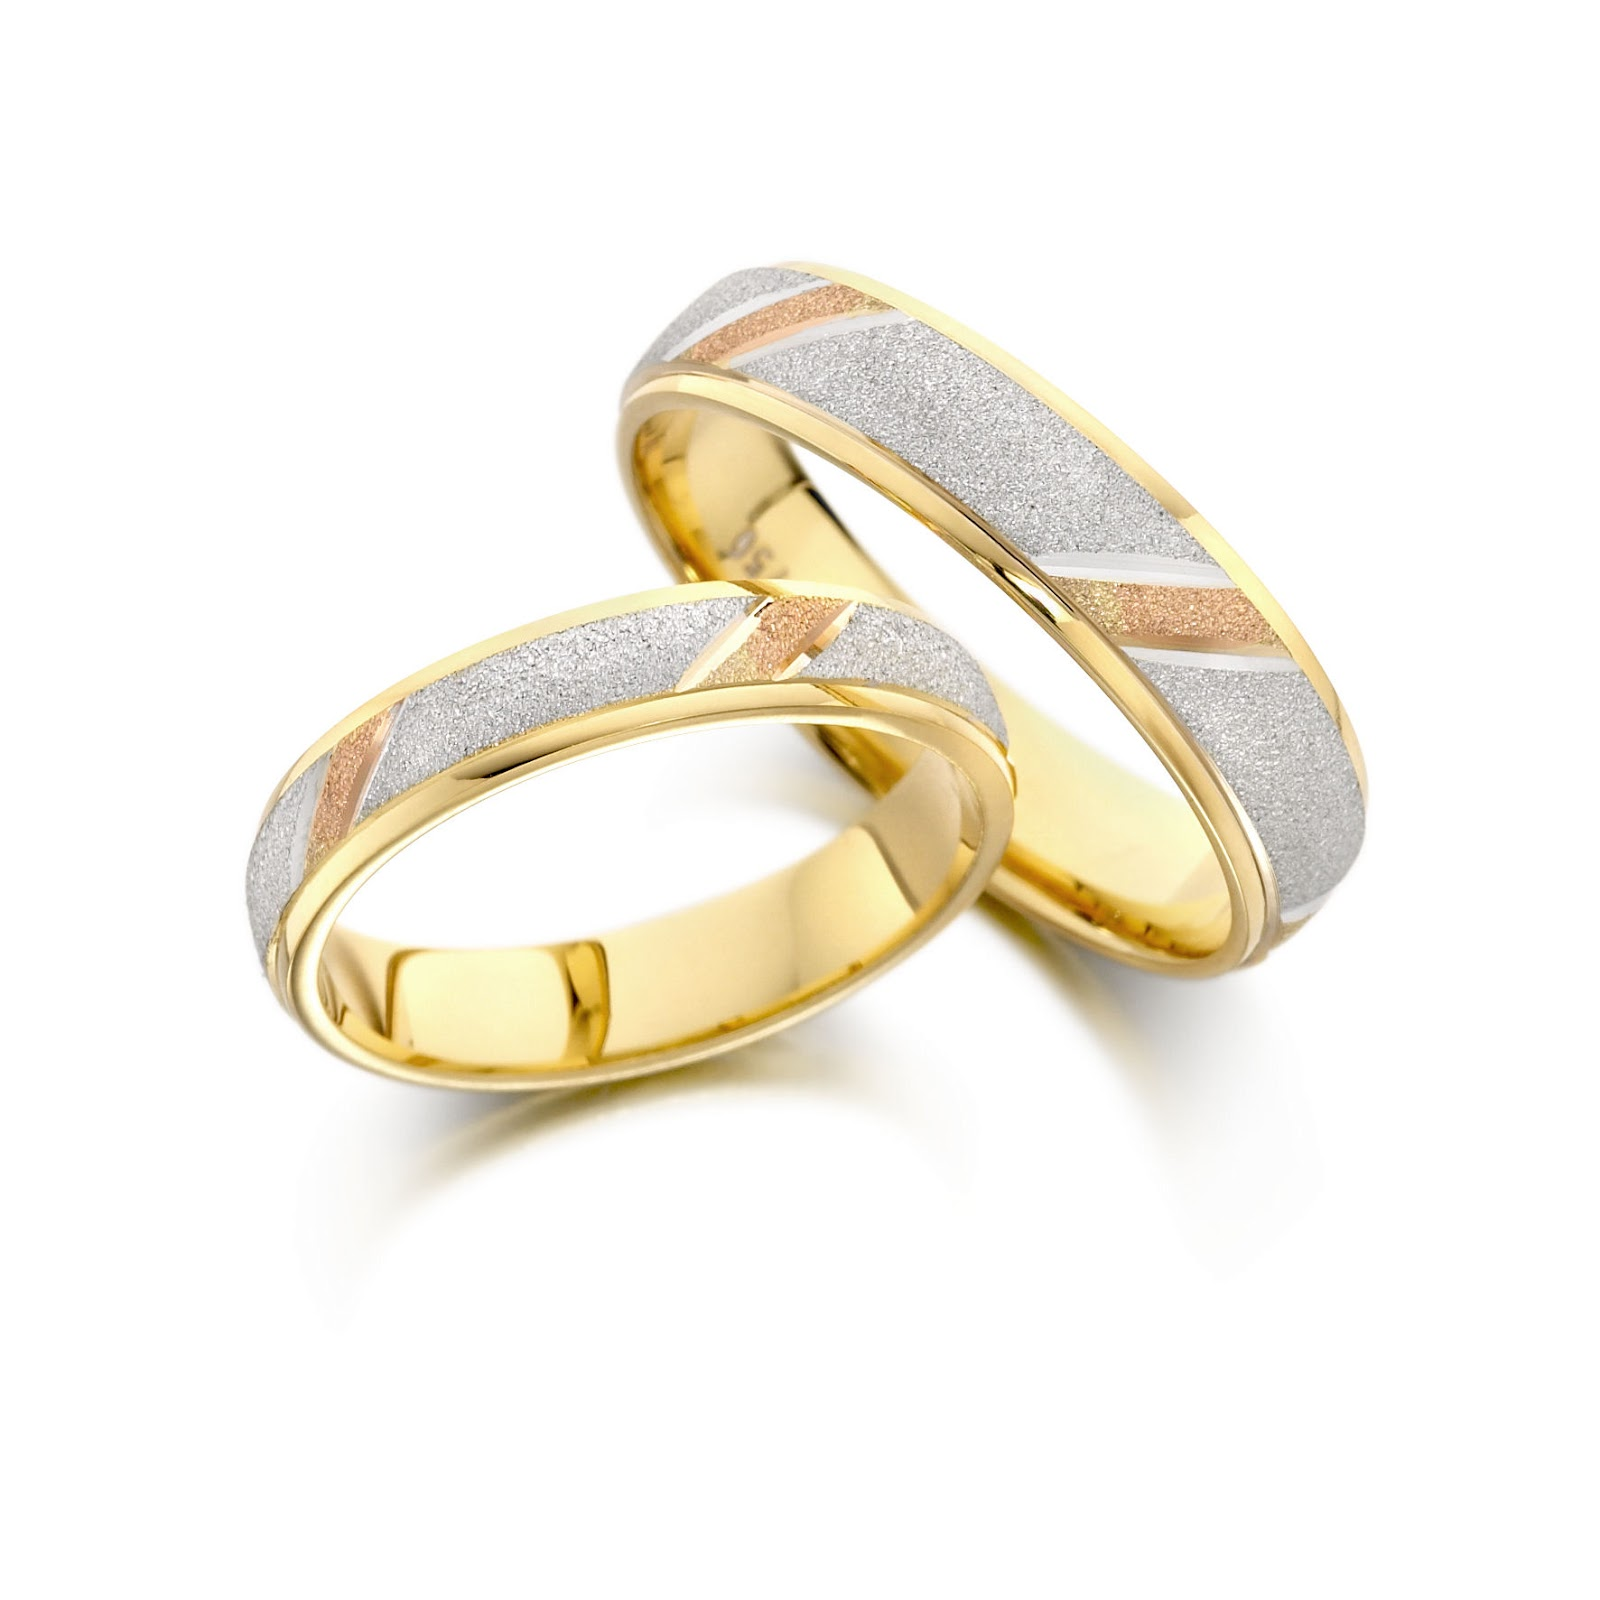 wedding rings for a wedding abroad - Rings For Wedding